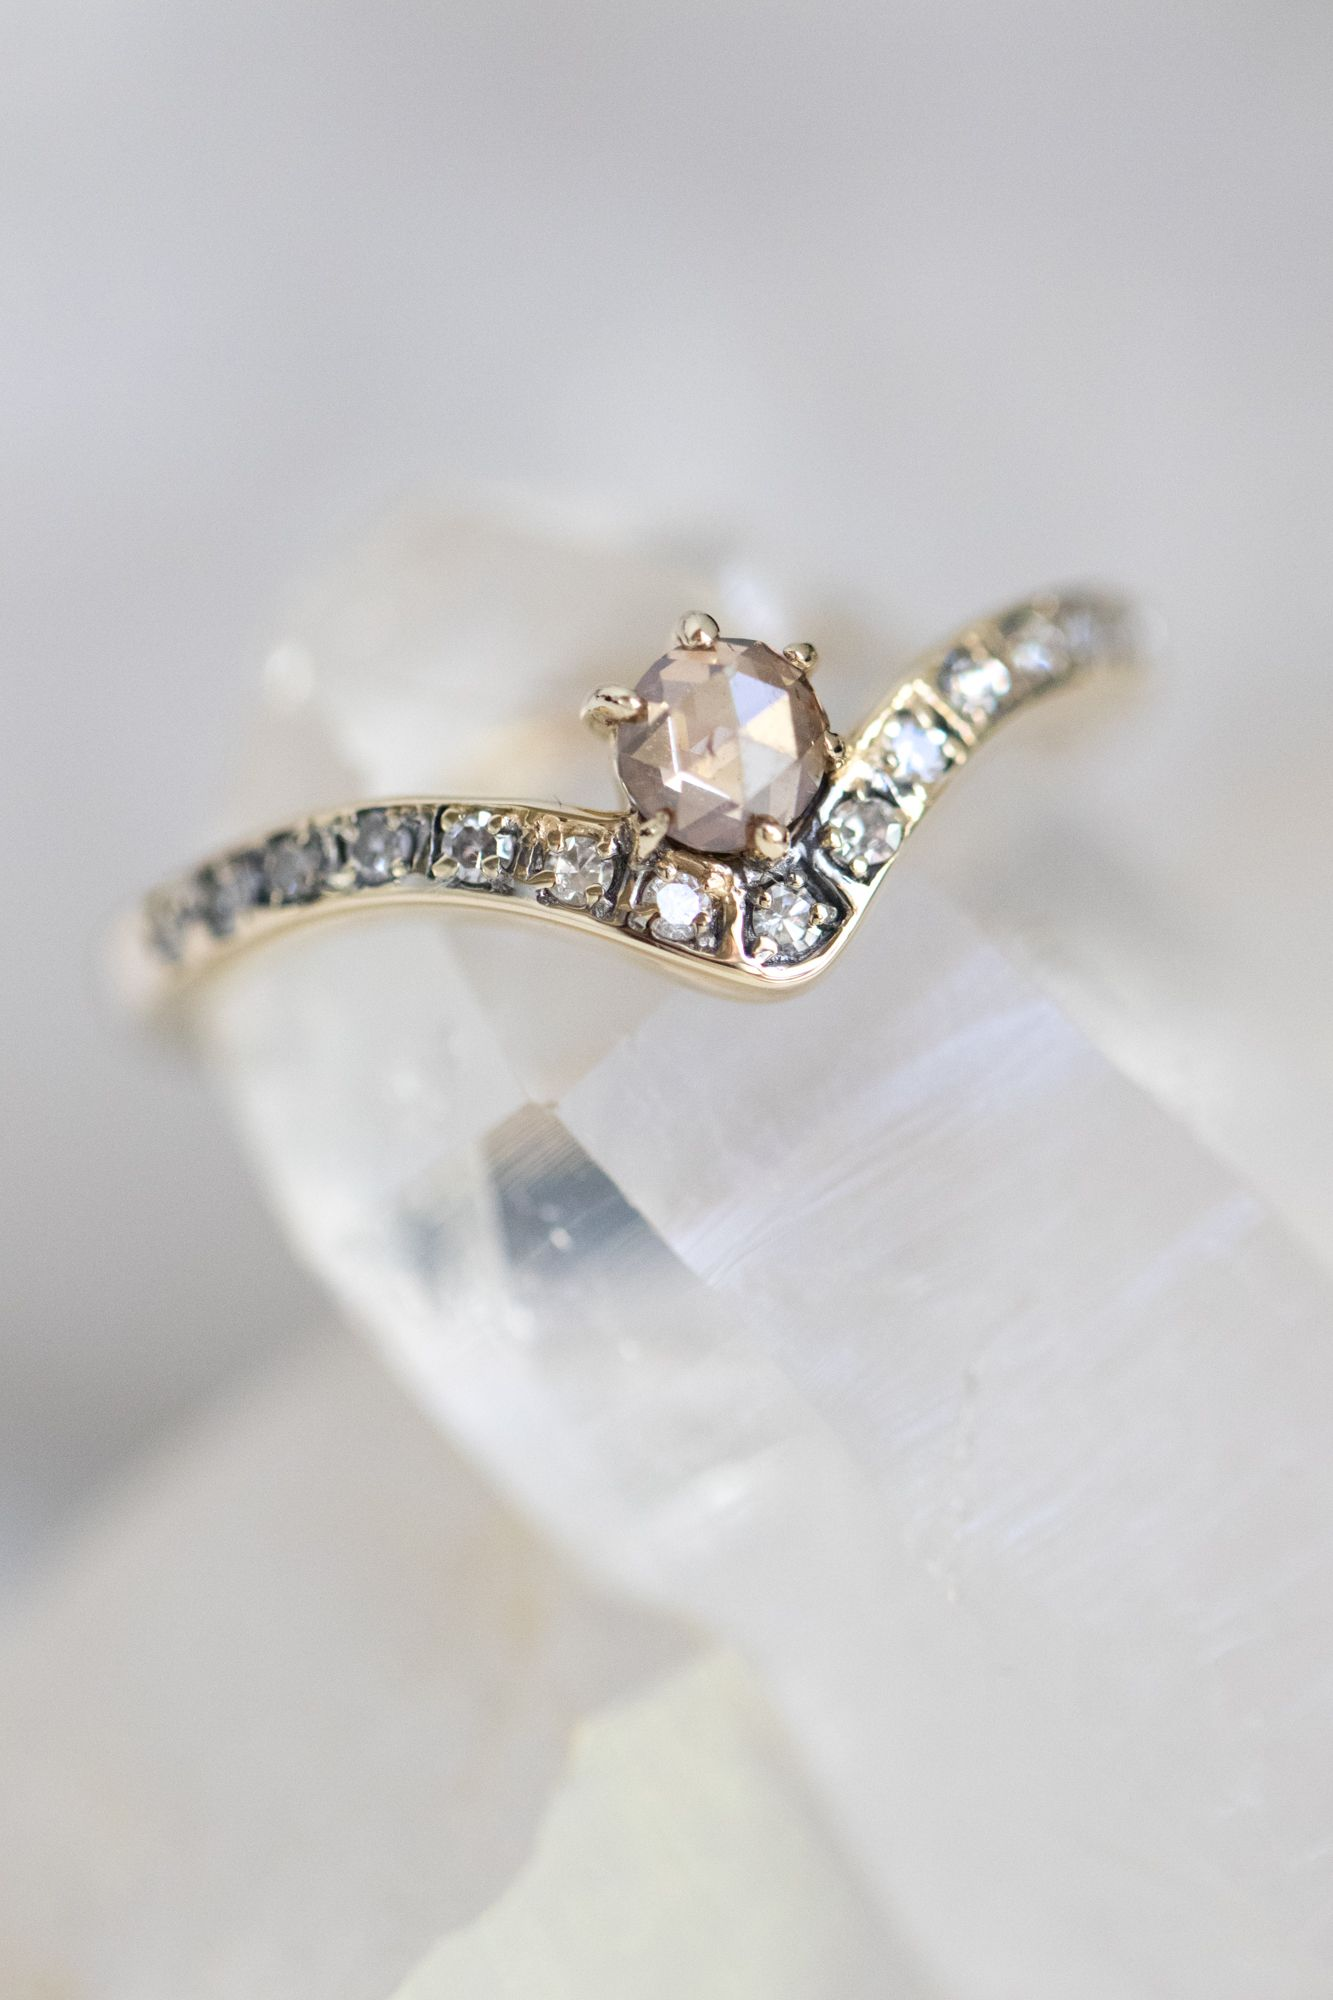 Mania Mania / Fine Jewellery / Engagement ring / Wedding Jewelry ...